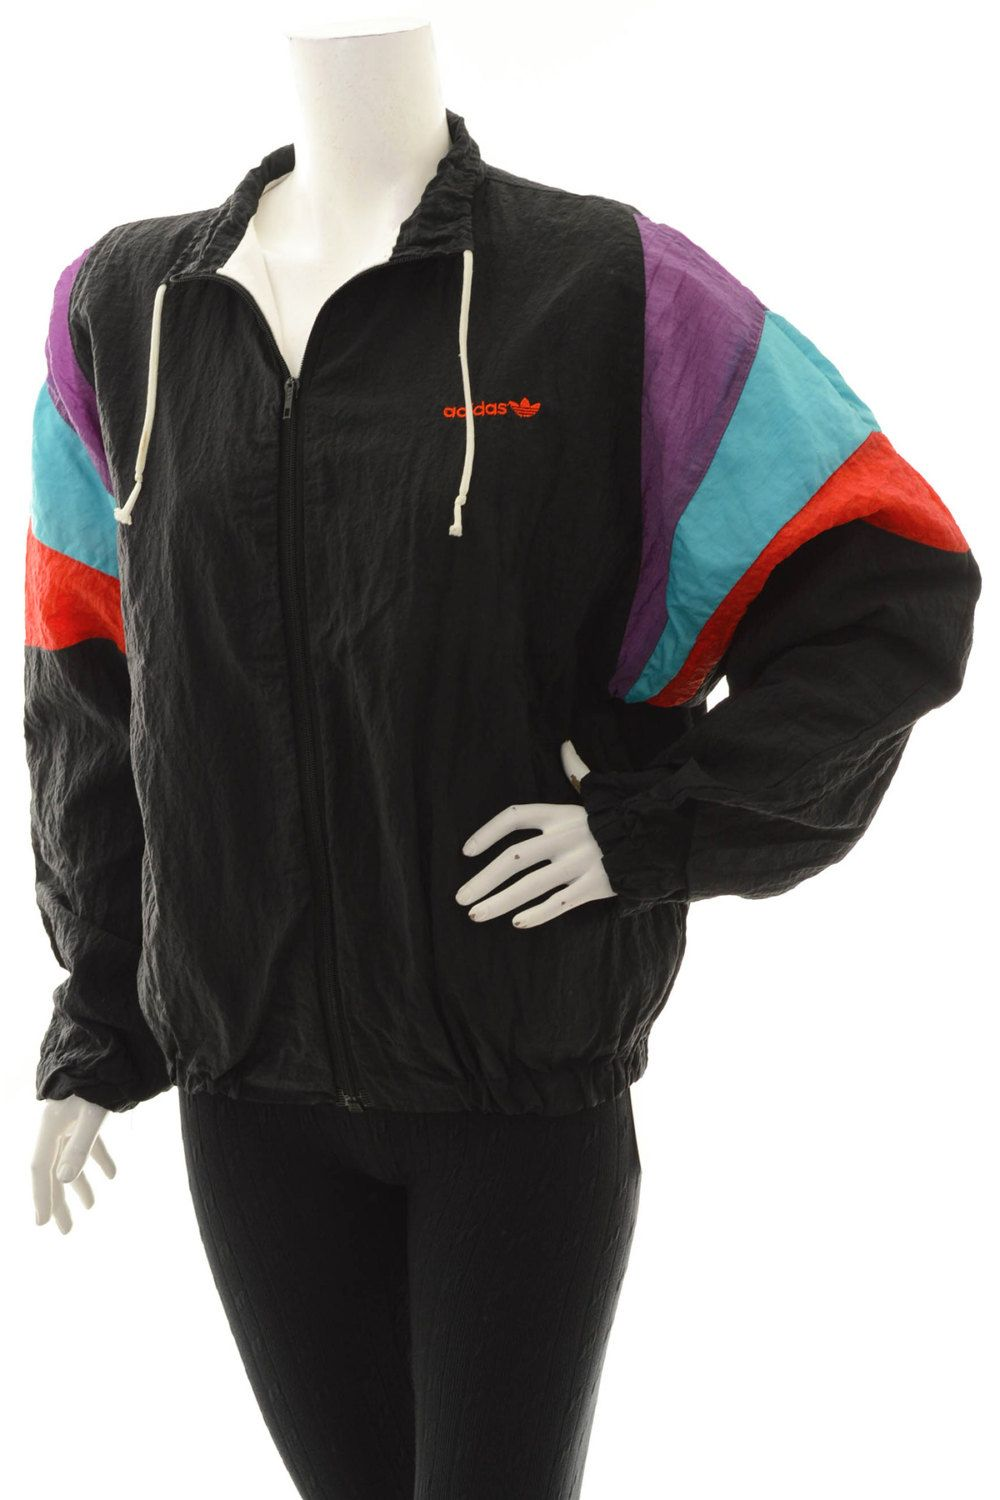 bb2a9743deaf Vintage 80s Adidas Originals Trefoil Women s Windbreaker Color Block  Black Red Blue Purple Size L by VapeoVintage on Etsy